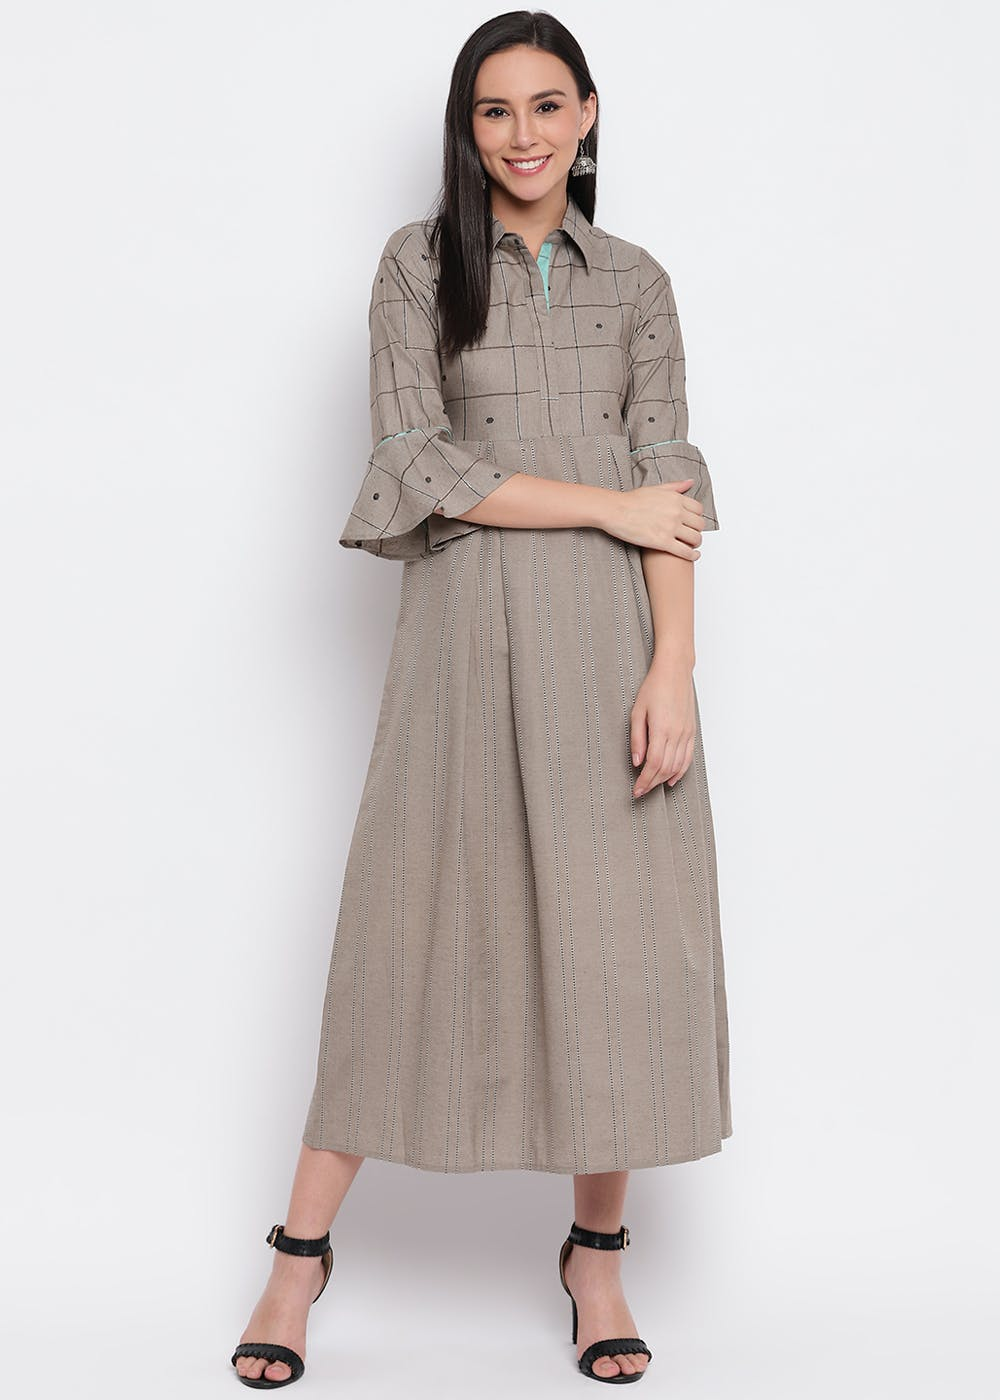 Bell Sleeves Detail Collared Dress - Brown